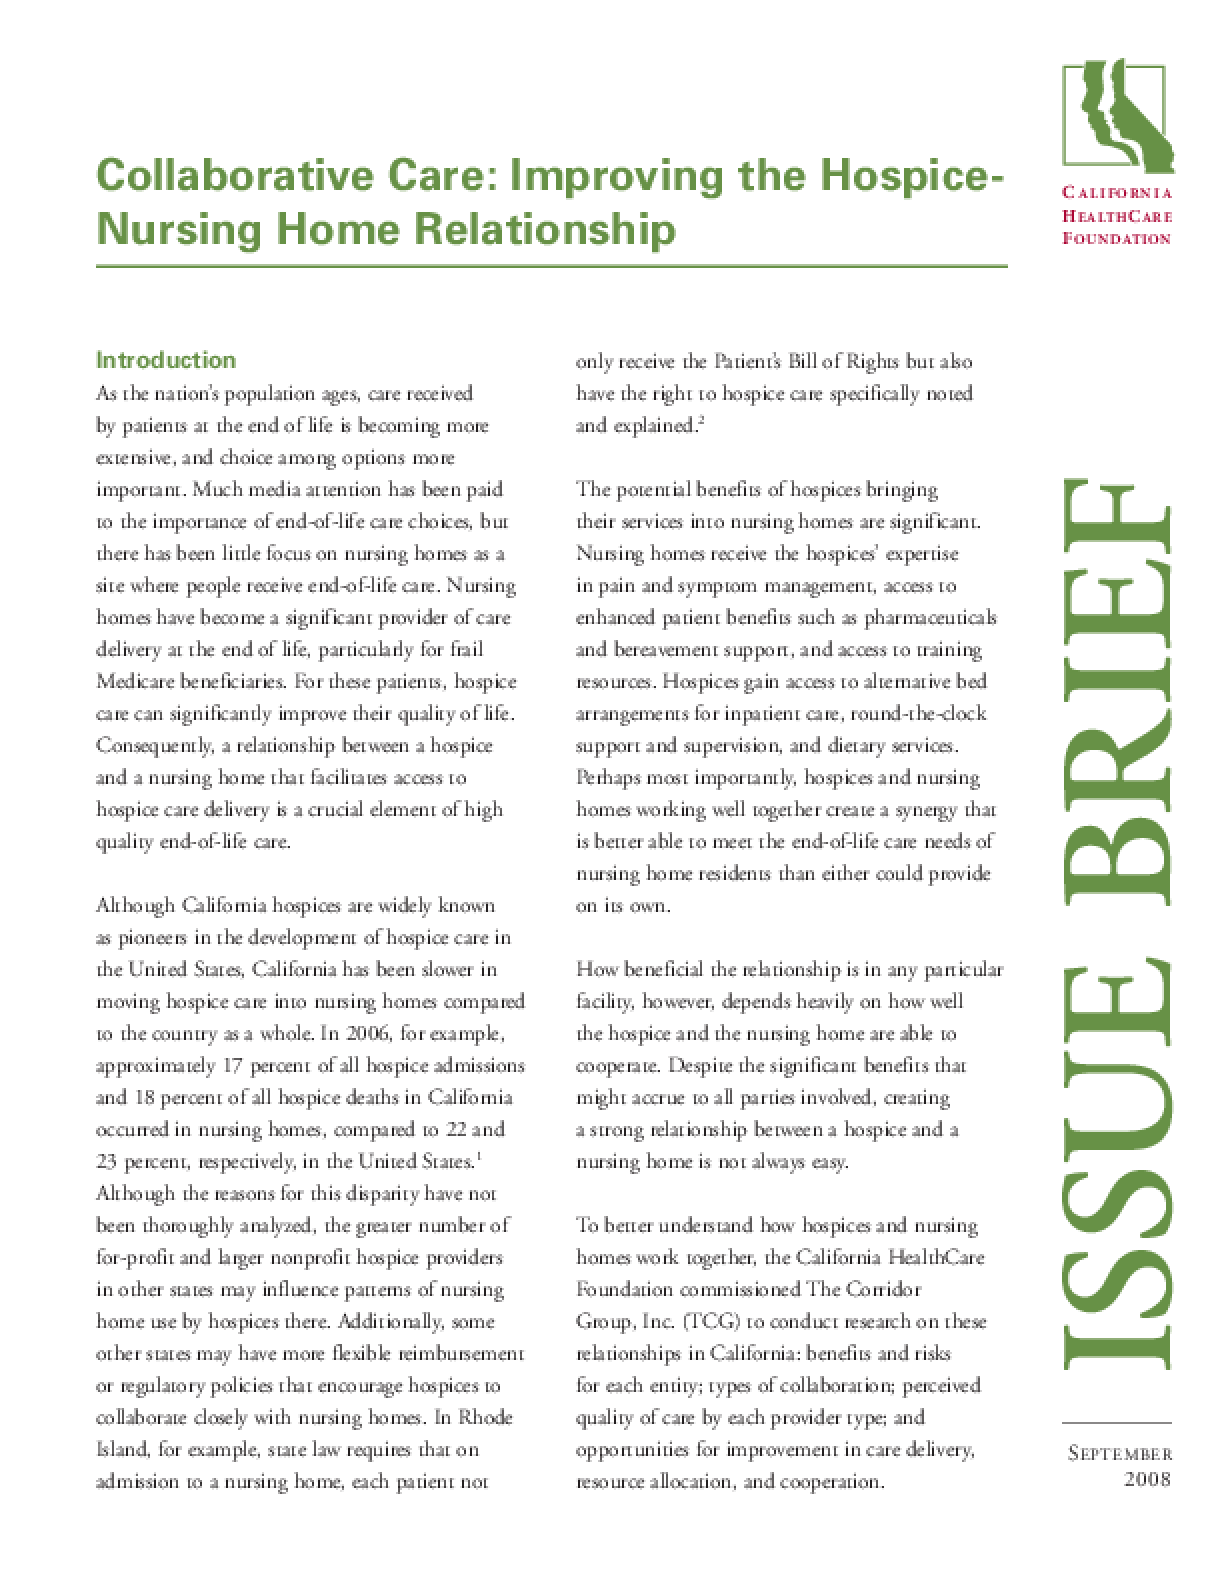 Collaborative Care: Improving the Hospice-Nursing Home Relationship